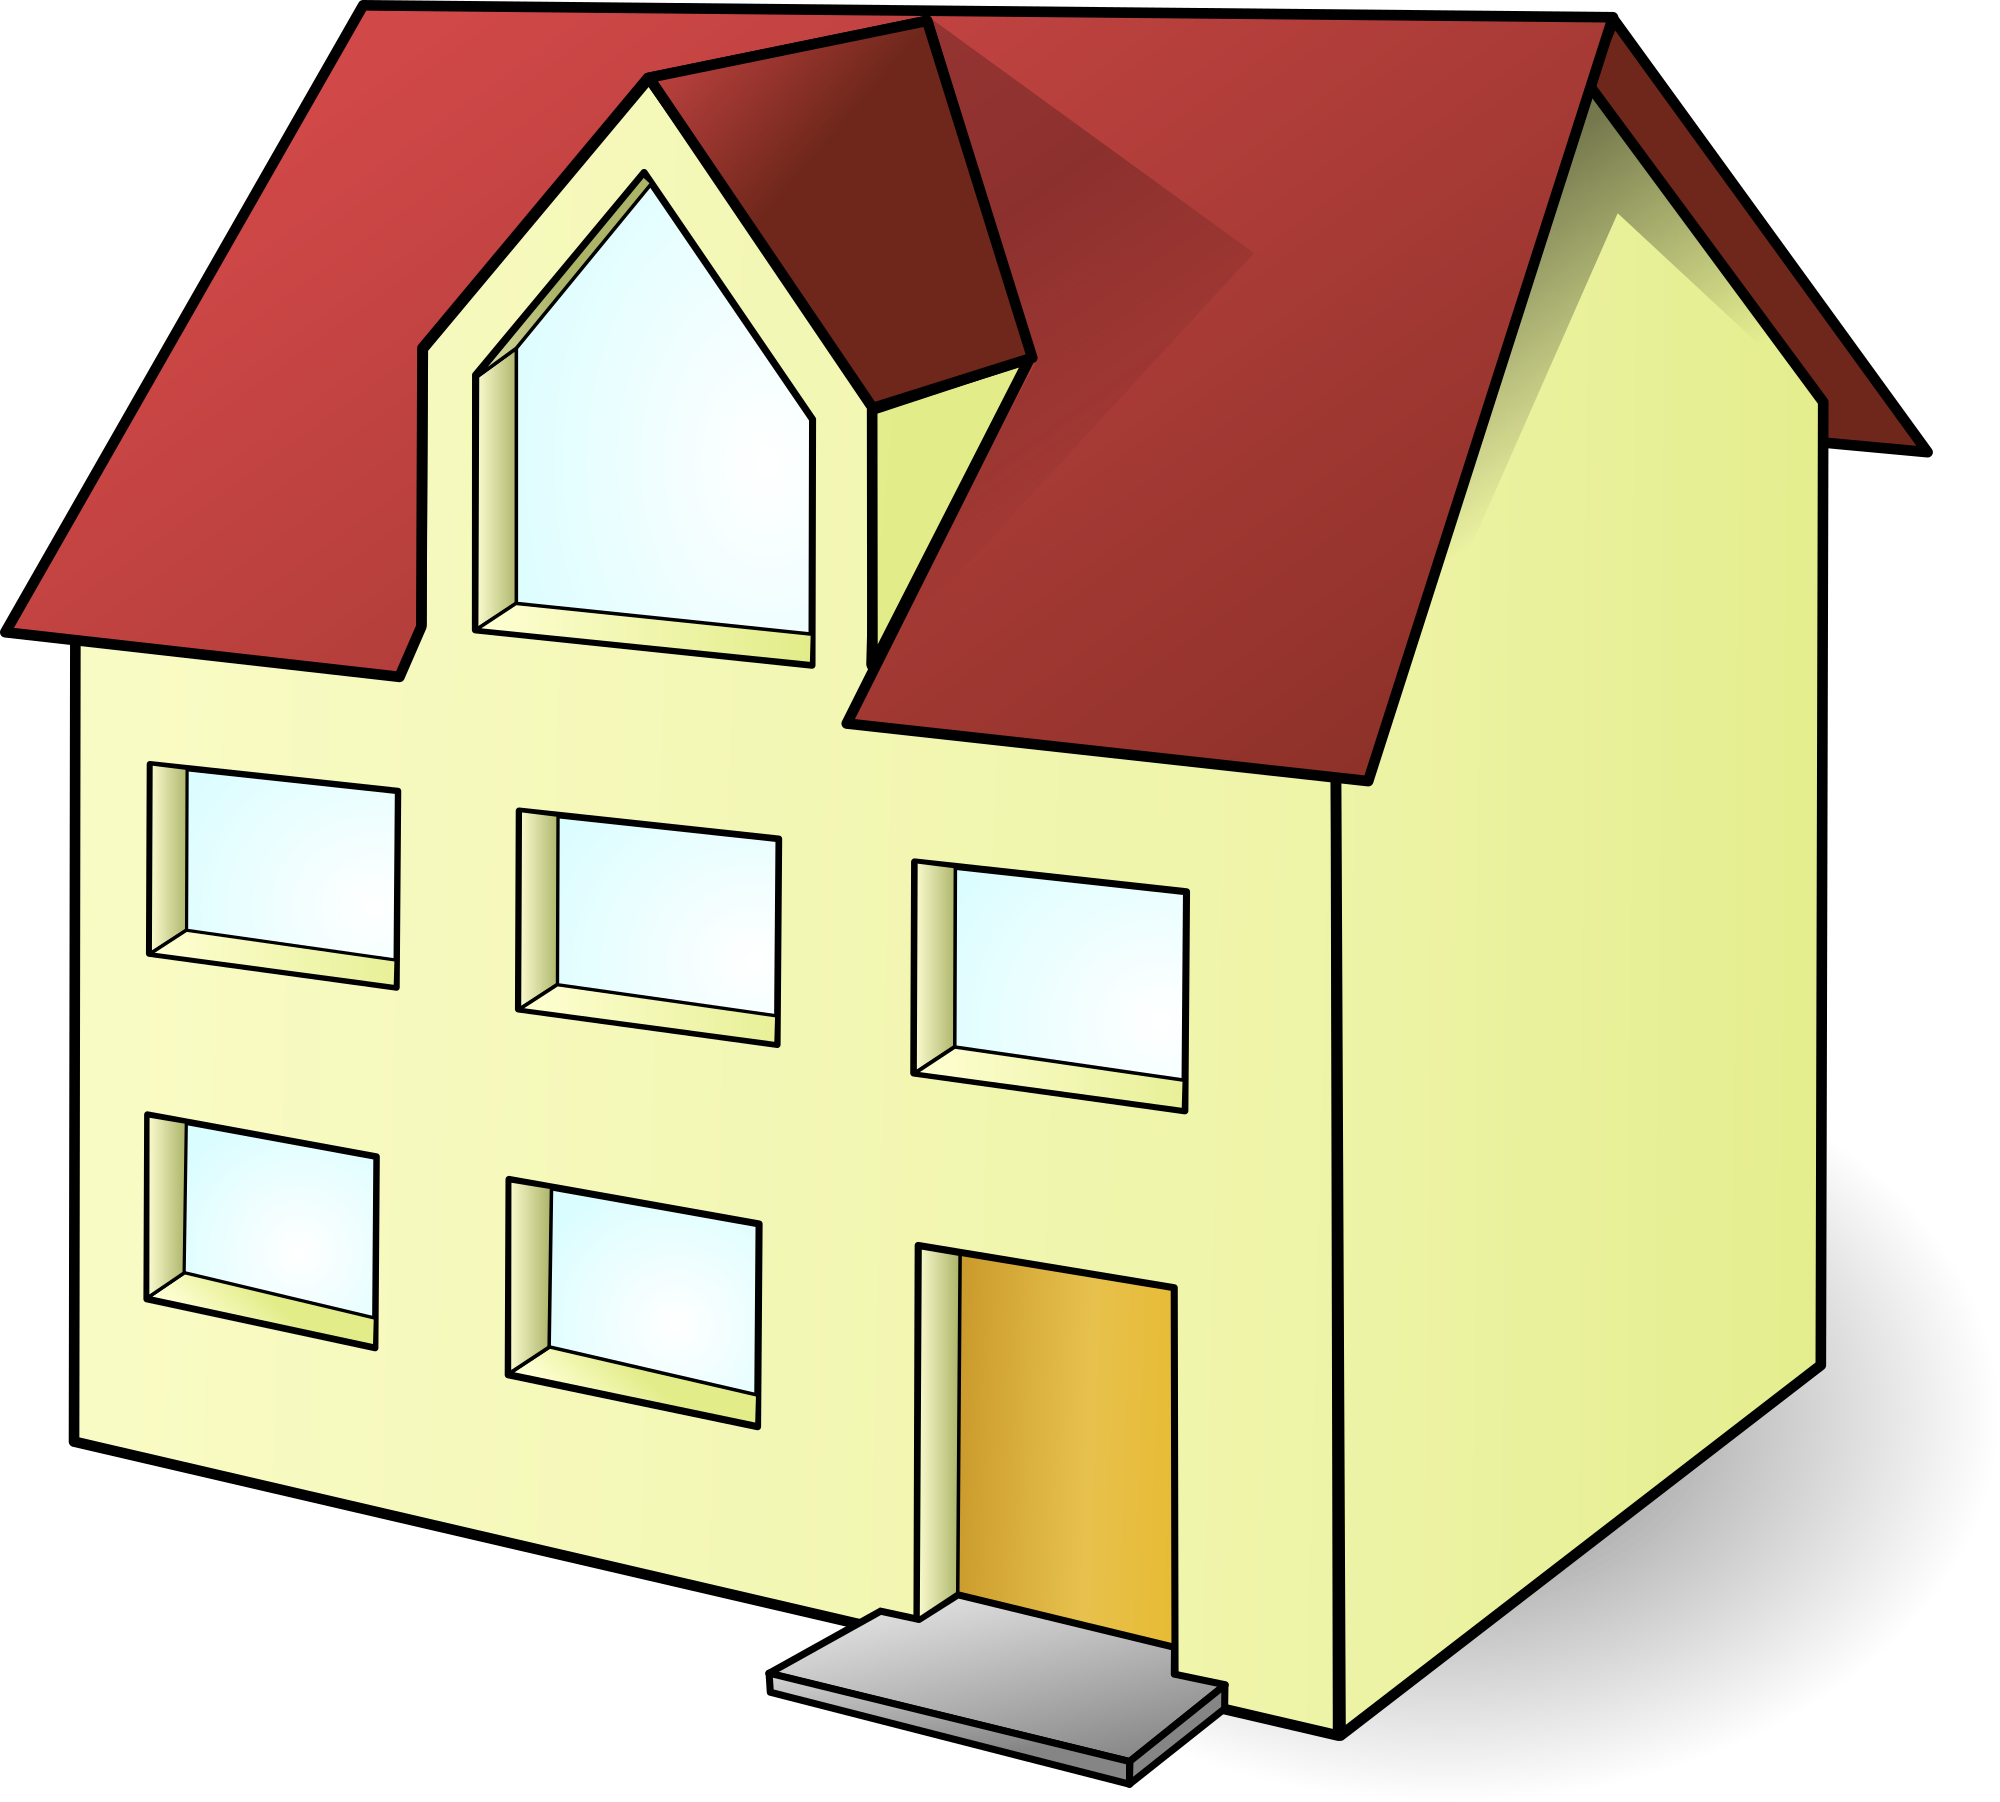 Free yellow house clipart clipart and vector image.